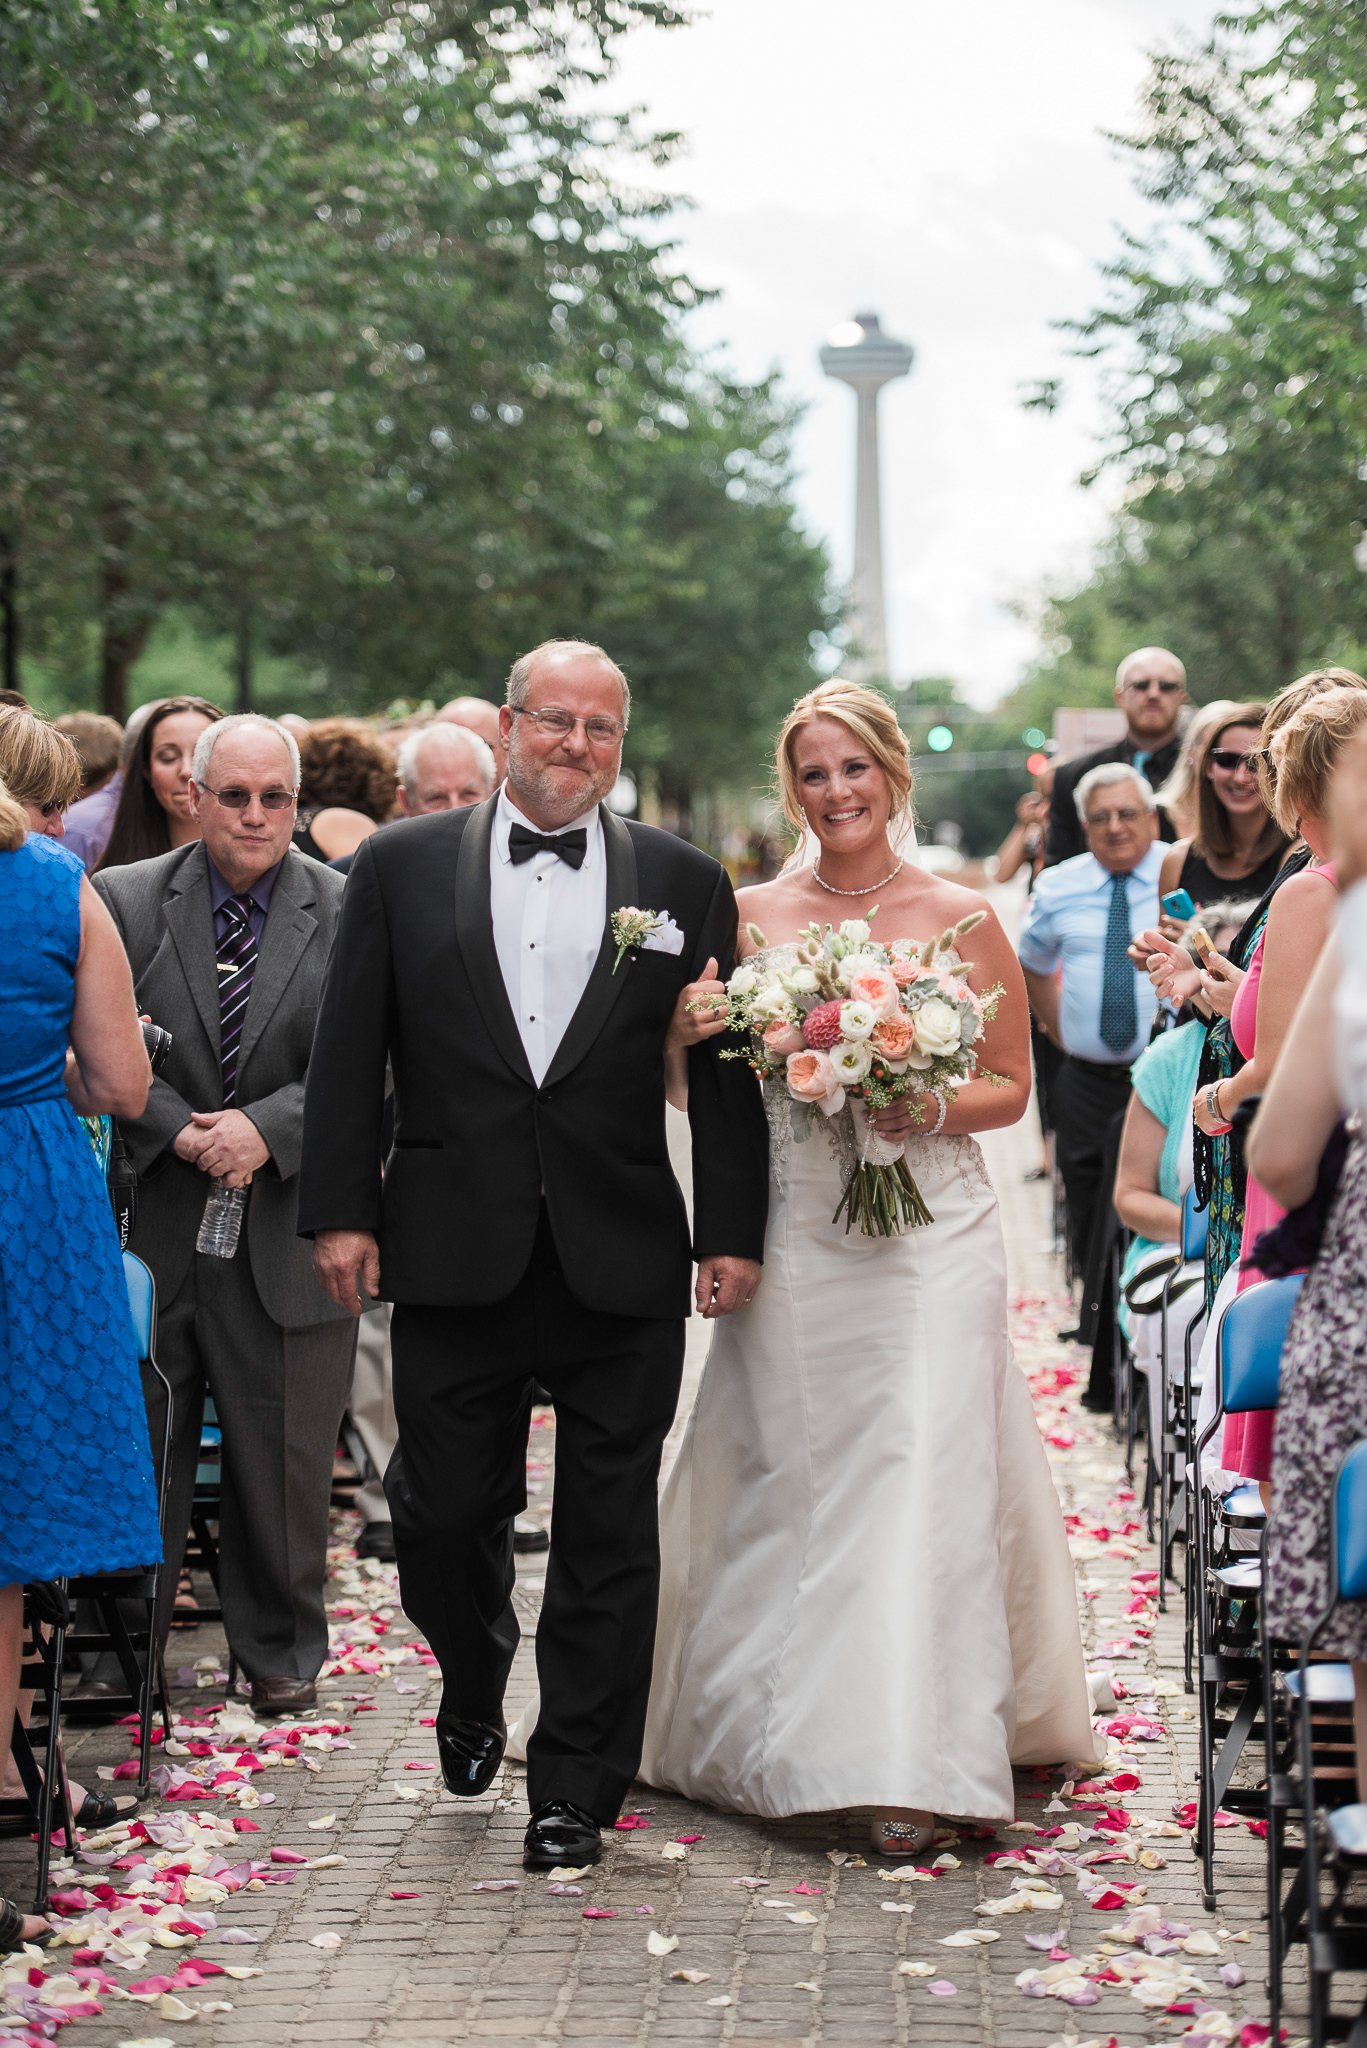 A bride walks down the aisle with her dad in Niagara Falls, NY